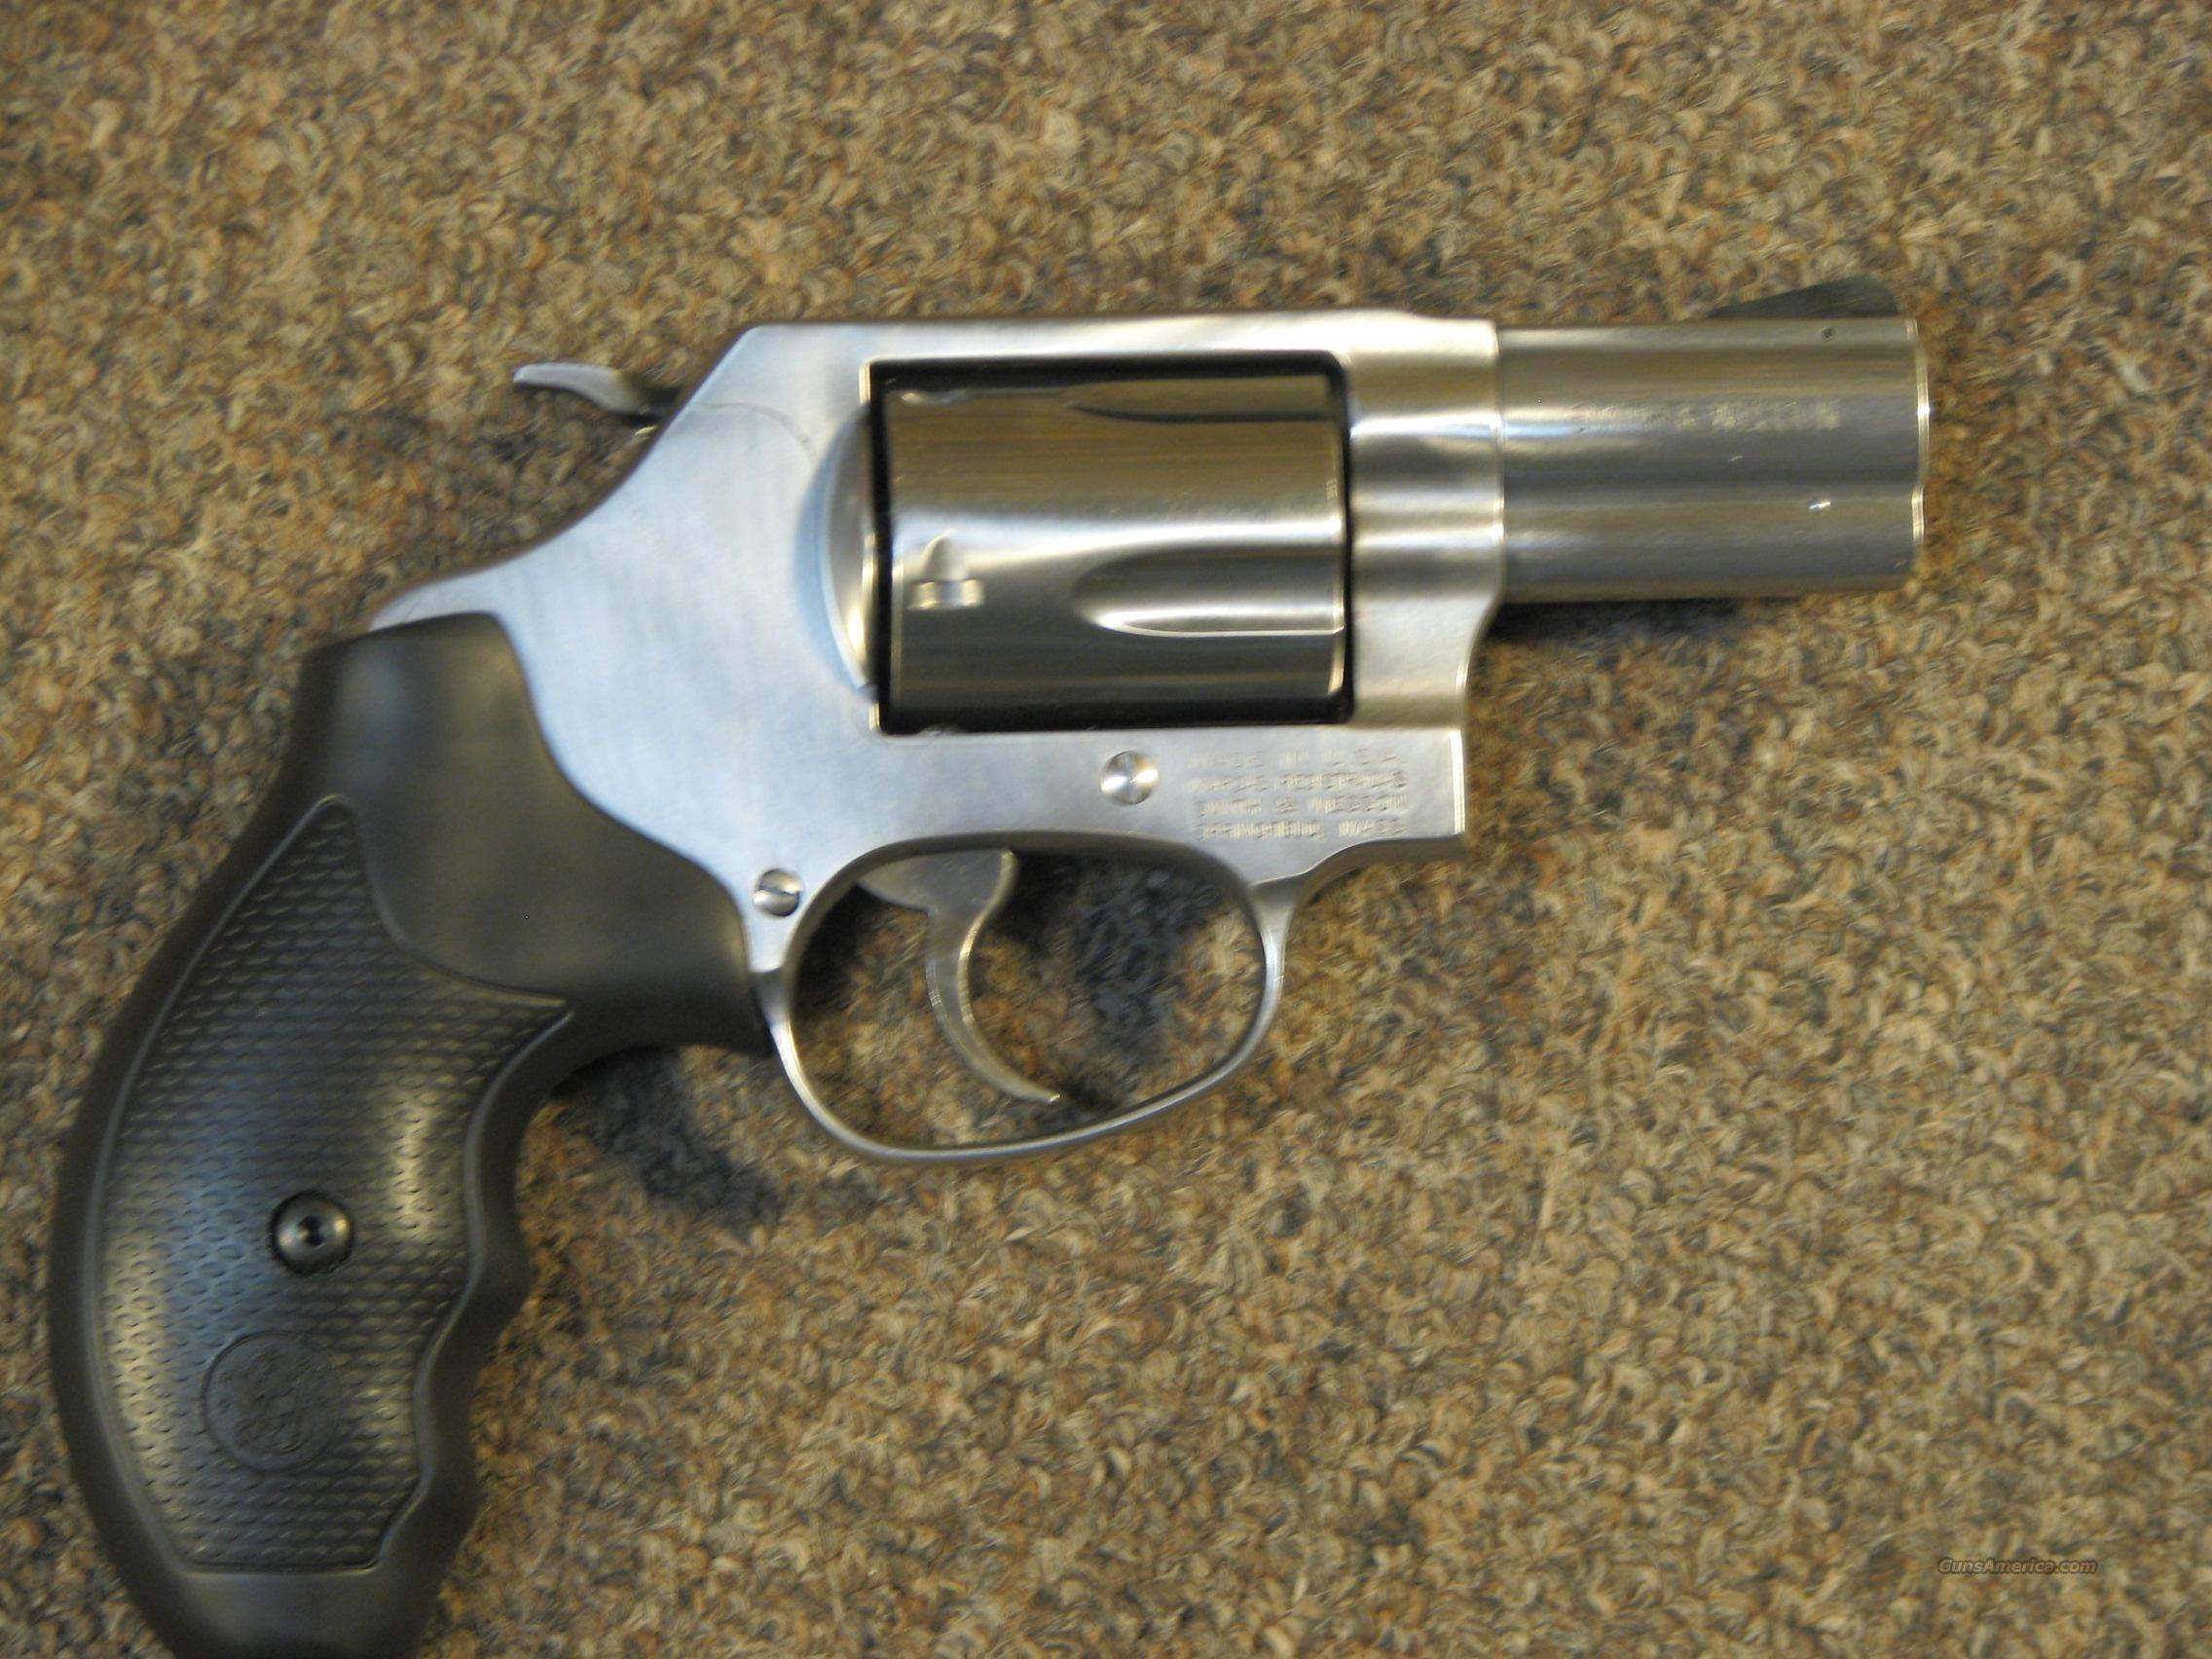 SMITH & WESSON MODEL 60 STAINLESS .357 MAG - NEW!!  Guns > Pistols > Smith & Wesson Revolvers > Pocket Pistols